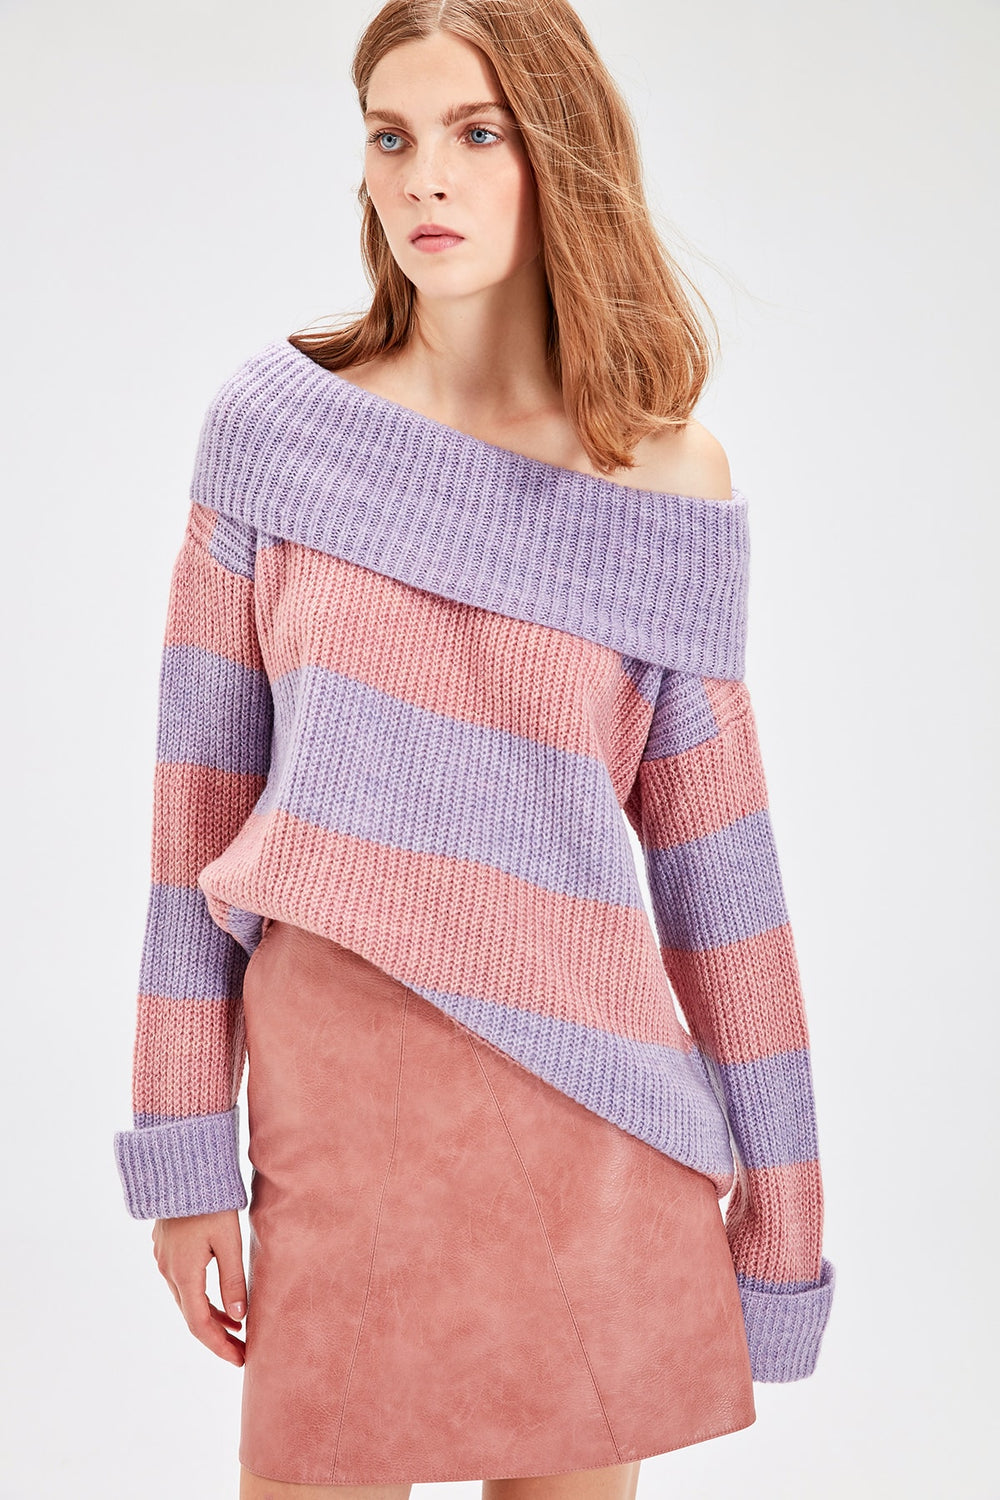 Miss Zut Miss Zut Color Rose Carman Collar Striped Sweater Sweater Miss Zut &CO